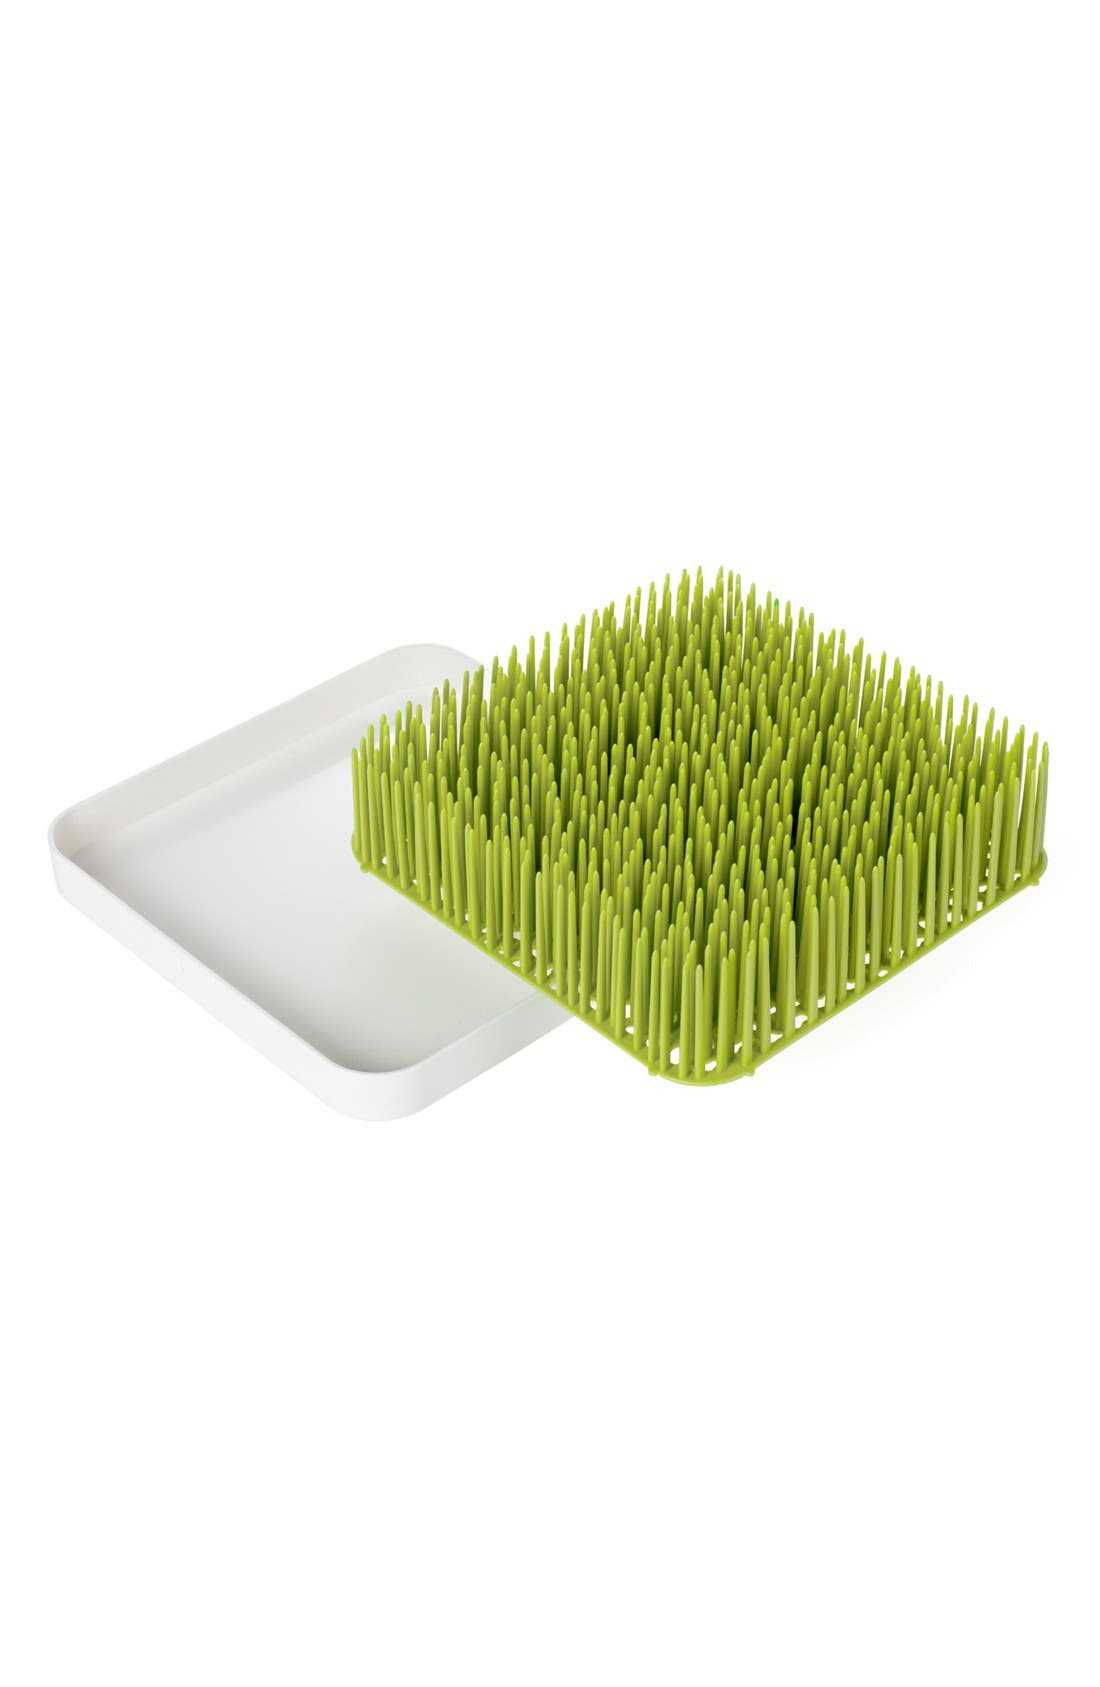 BOON 'Lawn' Drying Rack